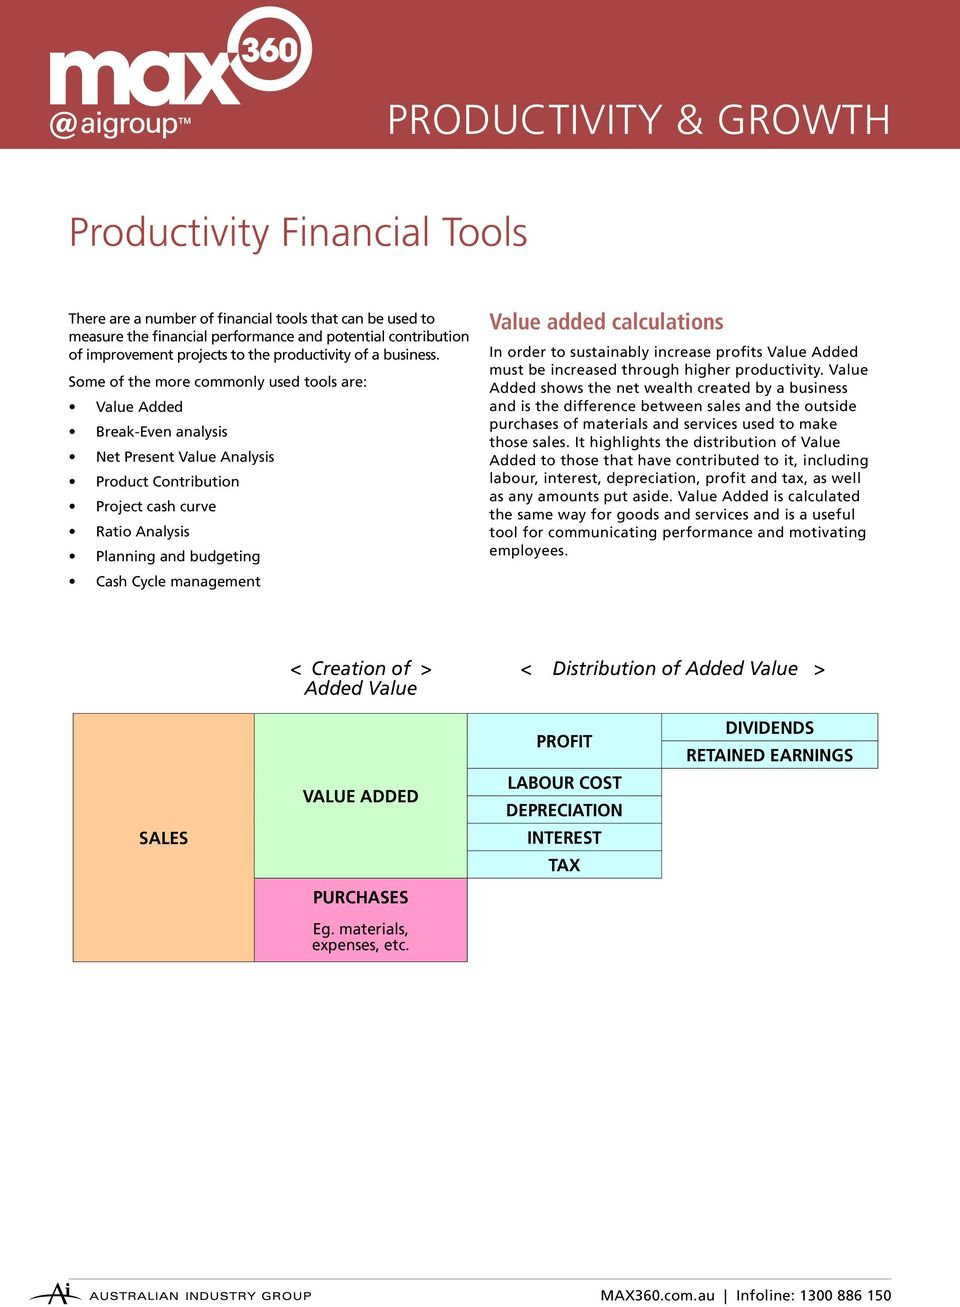 Some of the more commonly used tools are: Value Added Break-Even analysis Net Present Value Analysis Product Contribution Project cash curve Ratio Analysis Planning and budgeting Cash Cycle